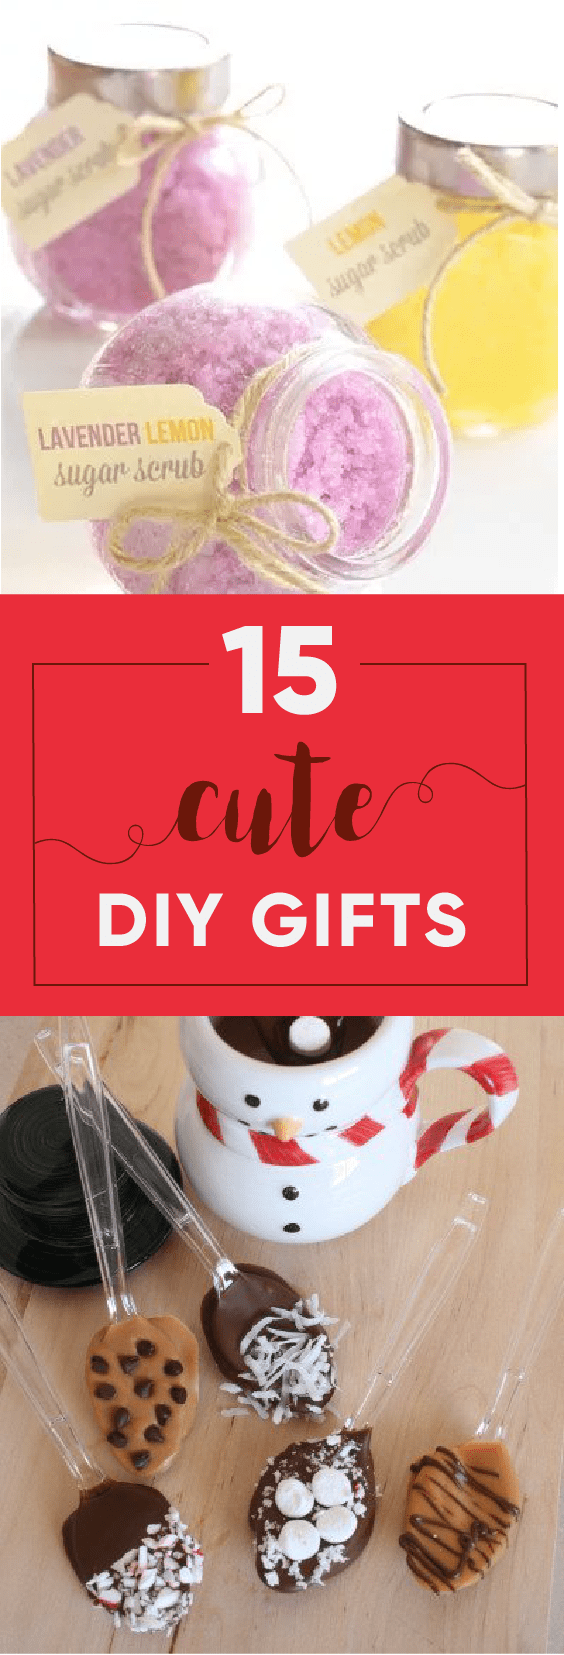 What's better then a gift? A gift created by you. We have 15 DIY gift ideas for you!